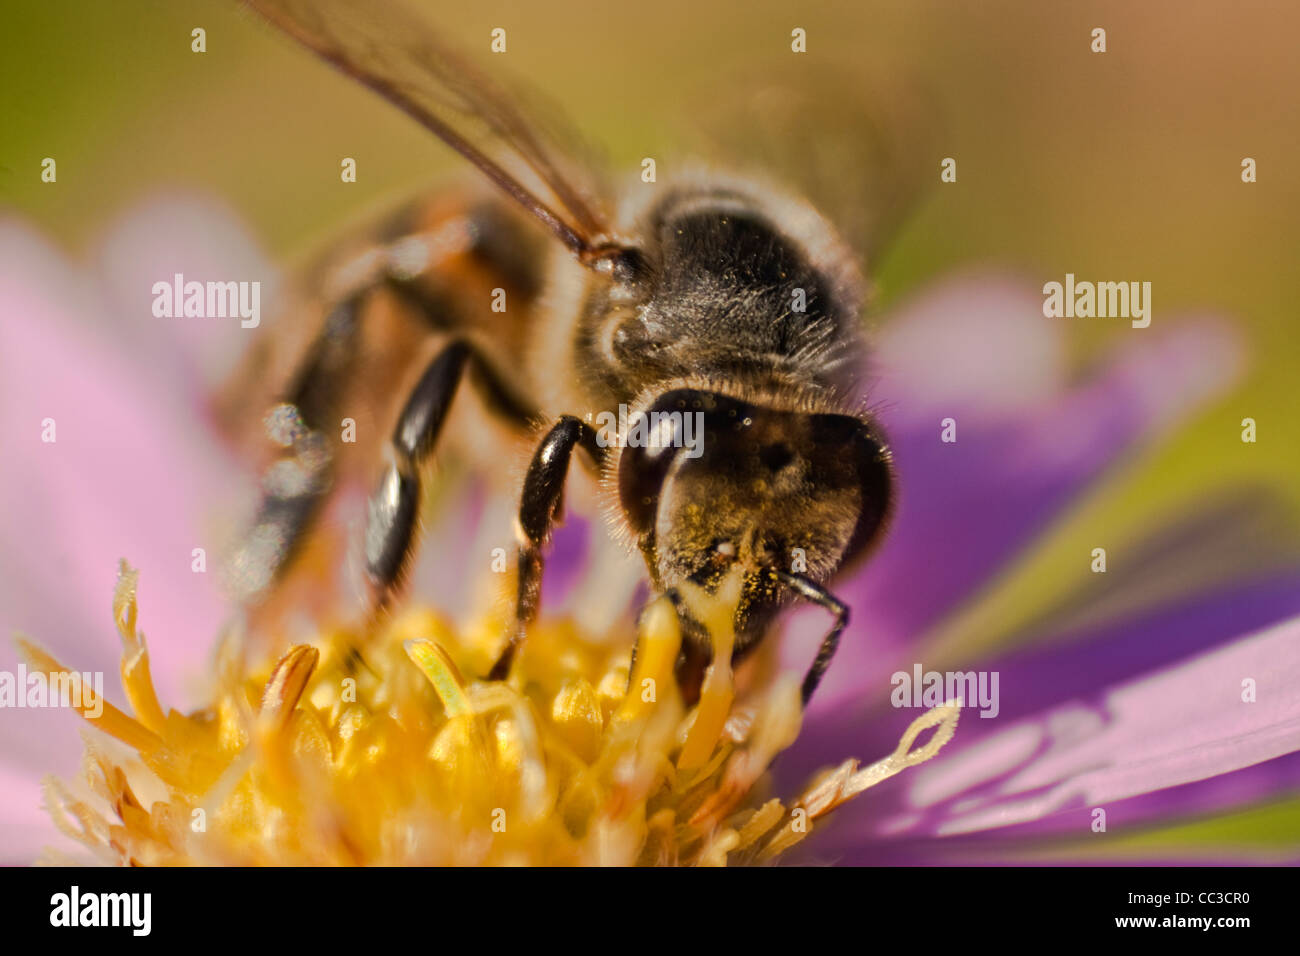 close up of a honey bee on a flower (Apis mellifera) - Stock Image